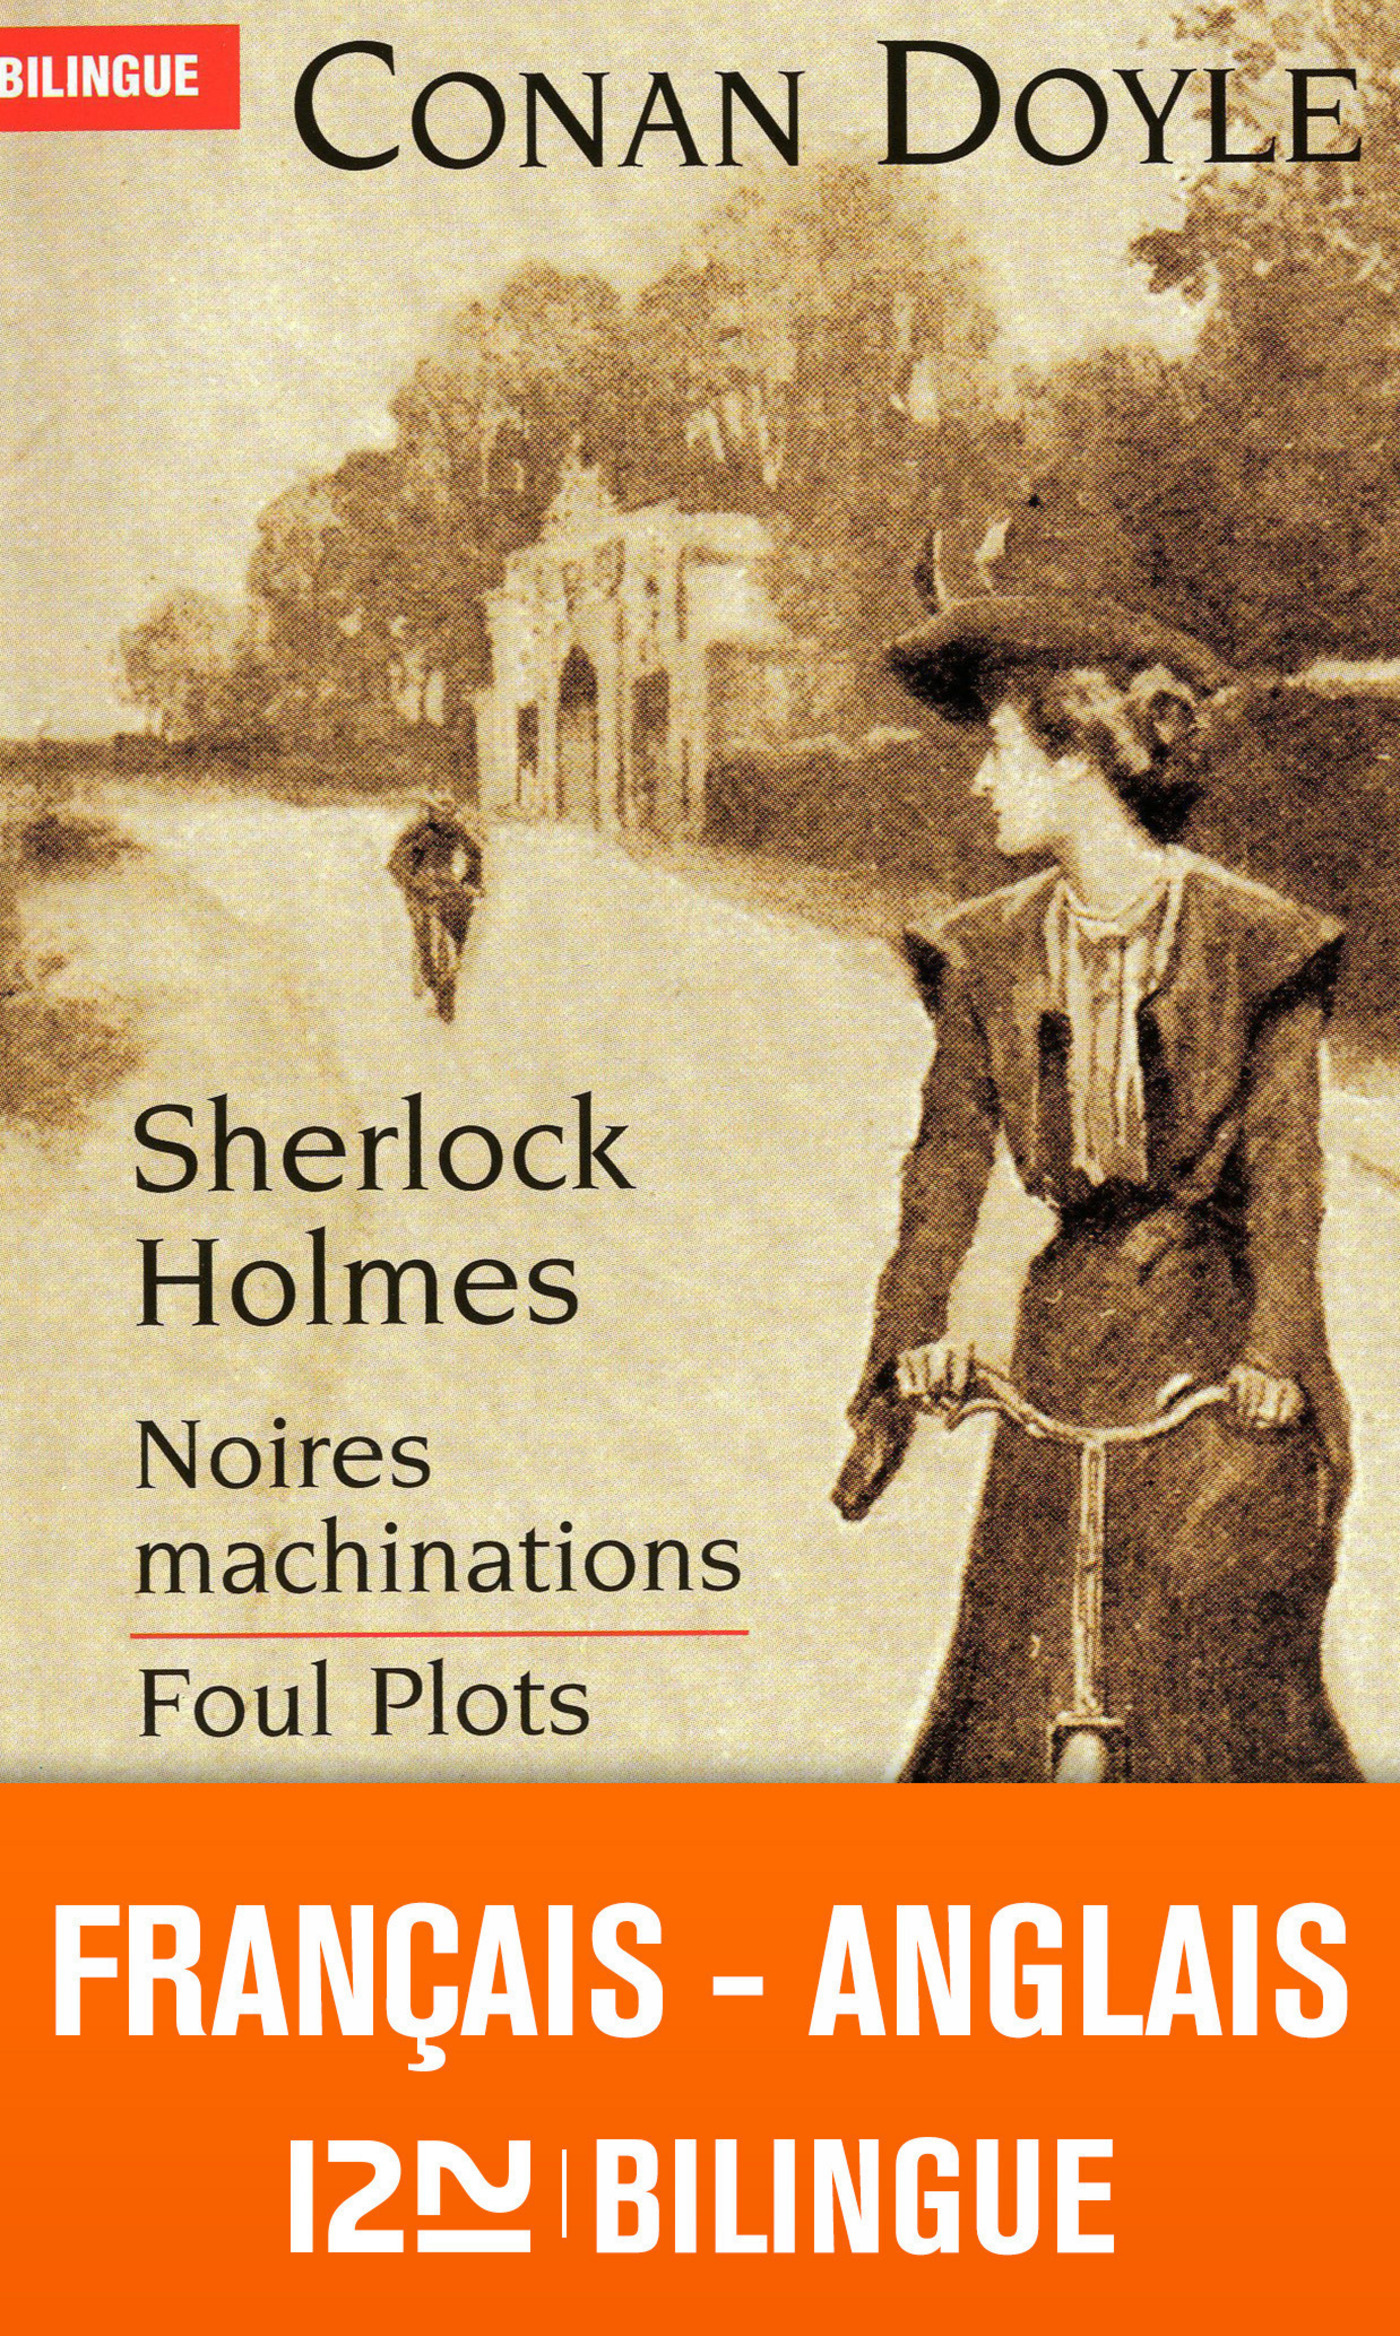 Foul Plots - Noires machinations